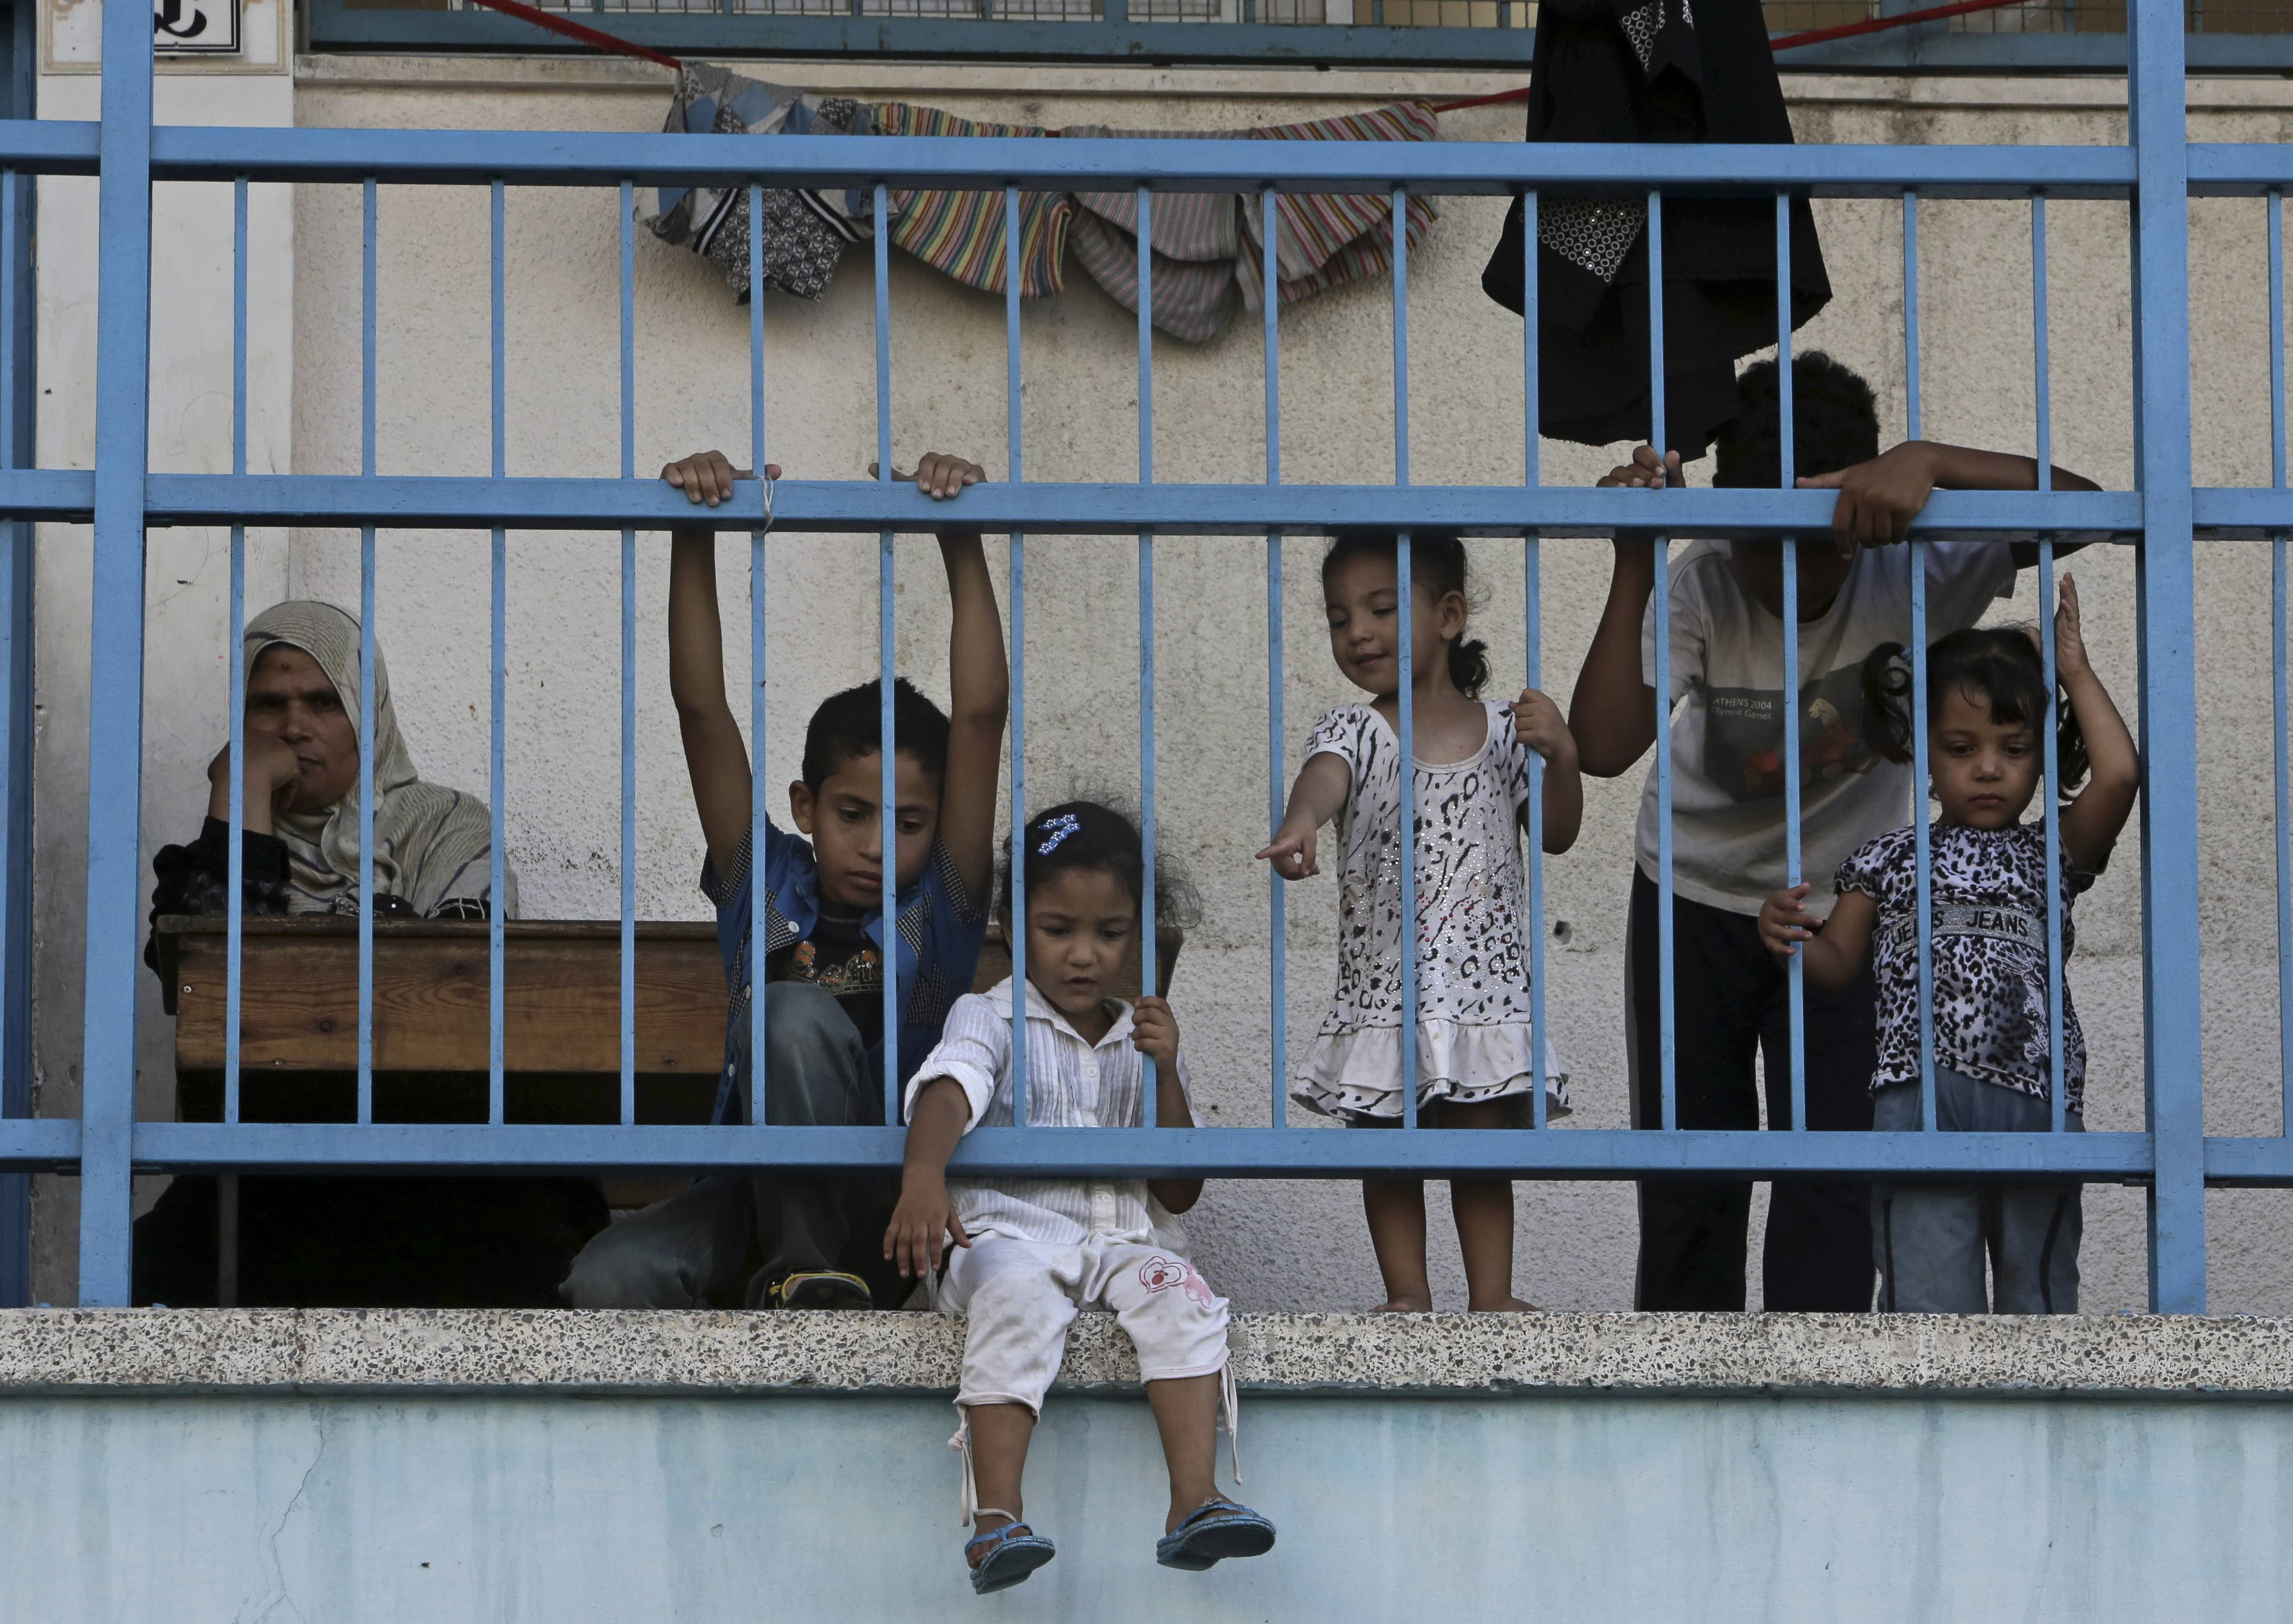 Displaced Palestinian children play on the balcony of the U.N. school where their family sought refuge during the war, in Beit Lahiya, in the northern Gaza Strip, Tuesday. Tens of thousands of Palestinians have been displaced in the Israel-Hamas war that began July 8, at least 10,000 housing units have been destroyed and many have found refuge at U.N. schools turned into shelters.